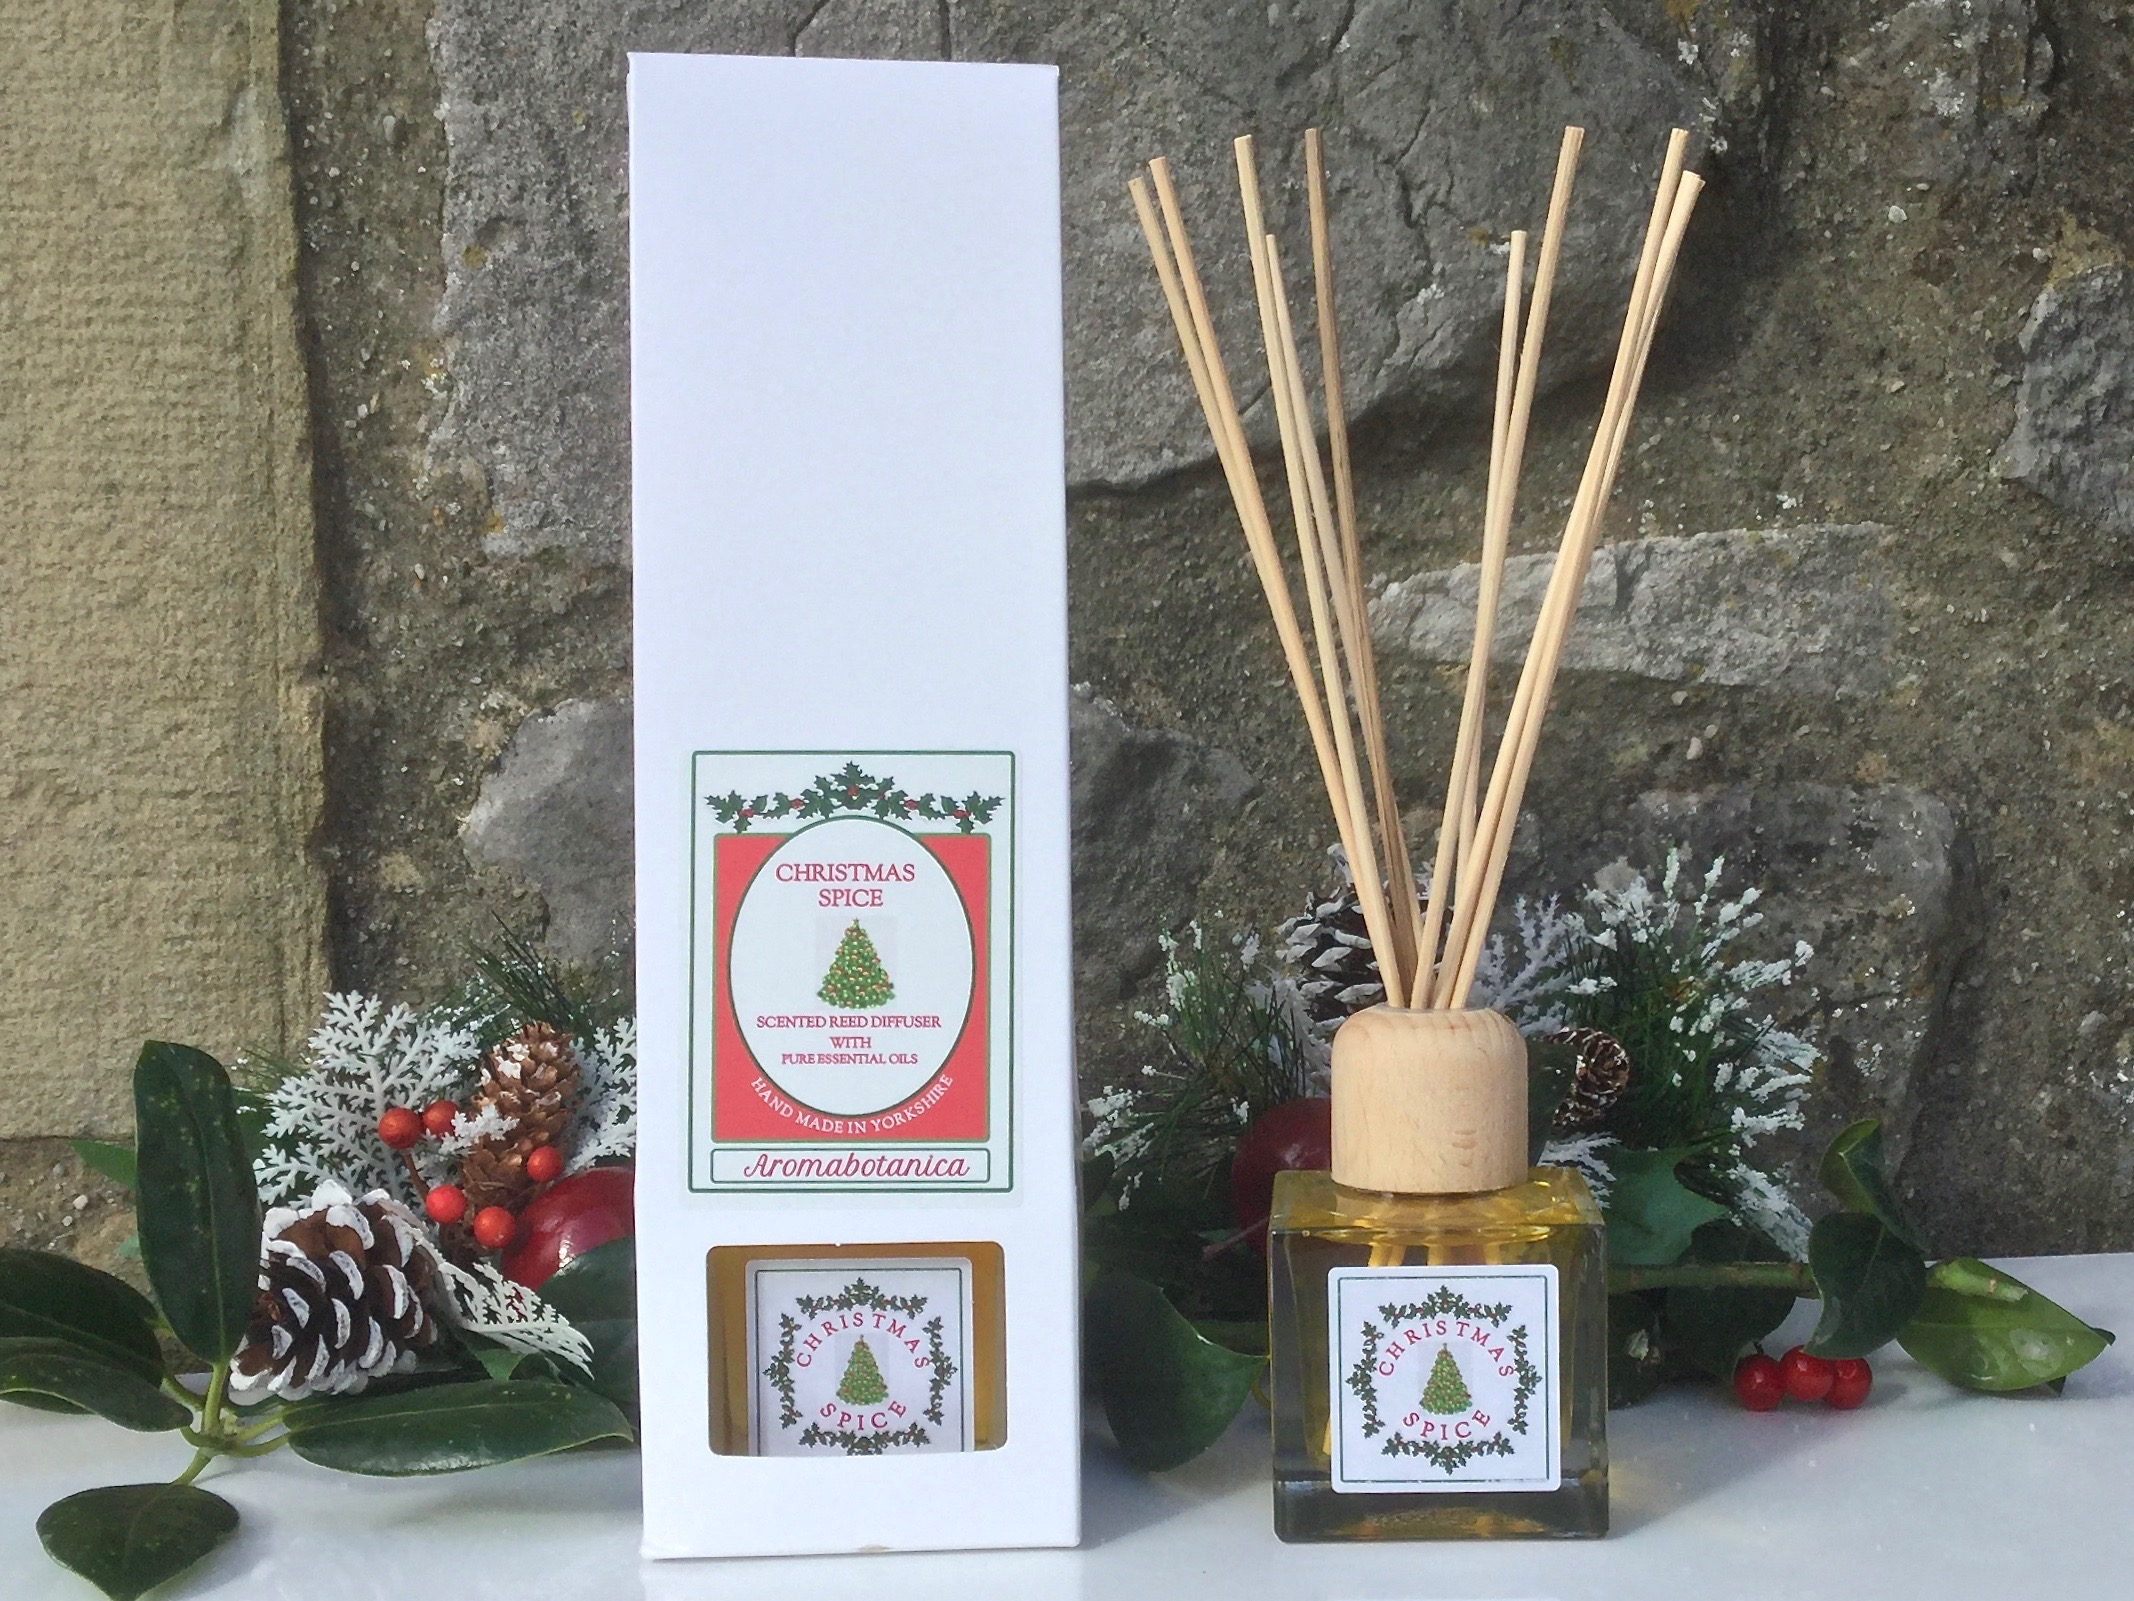 Christmas Spice Pure Essential Oil Reed Diffuser